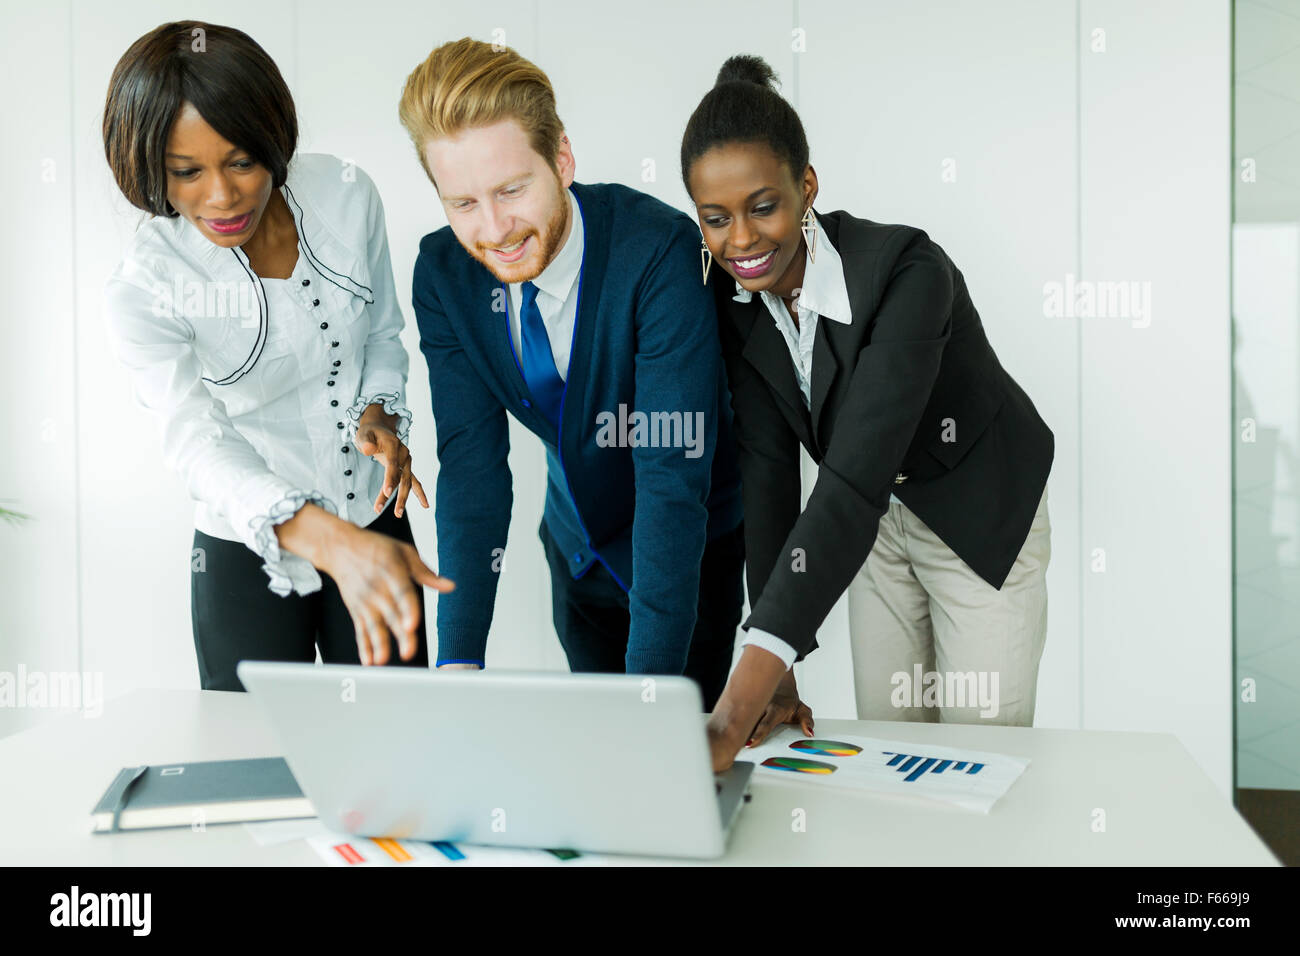 Business brainstorming by happy, nicely dressed multi-ethnic people in a clean, white office - Stock Image